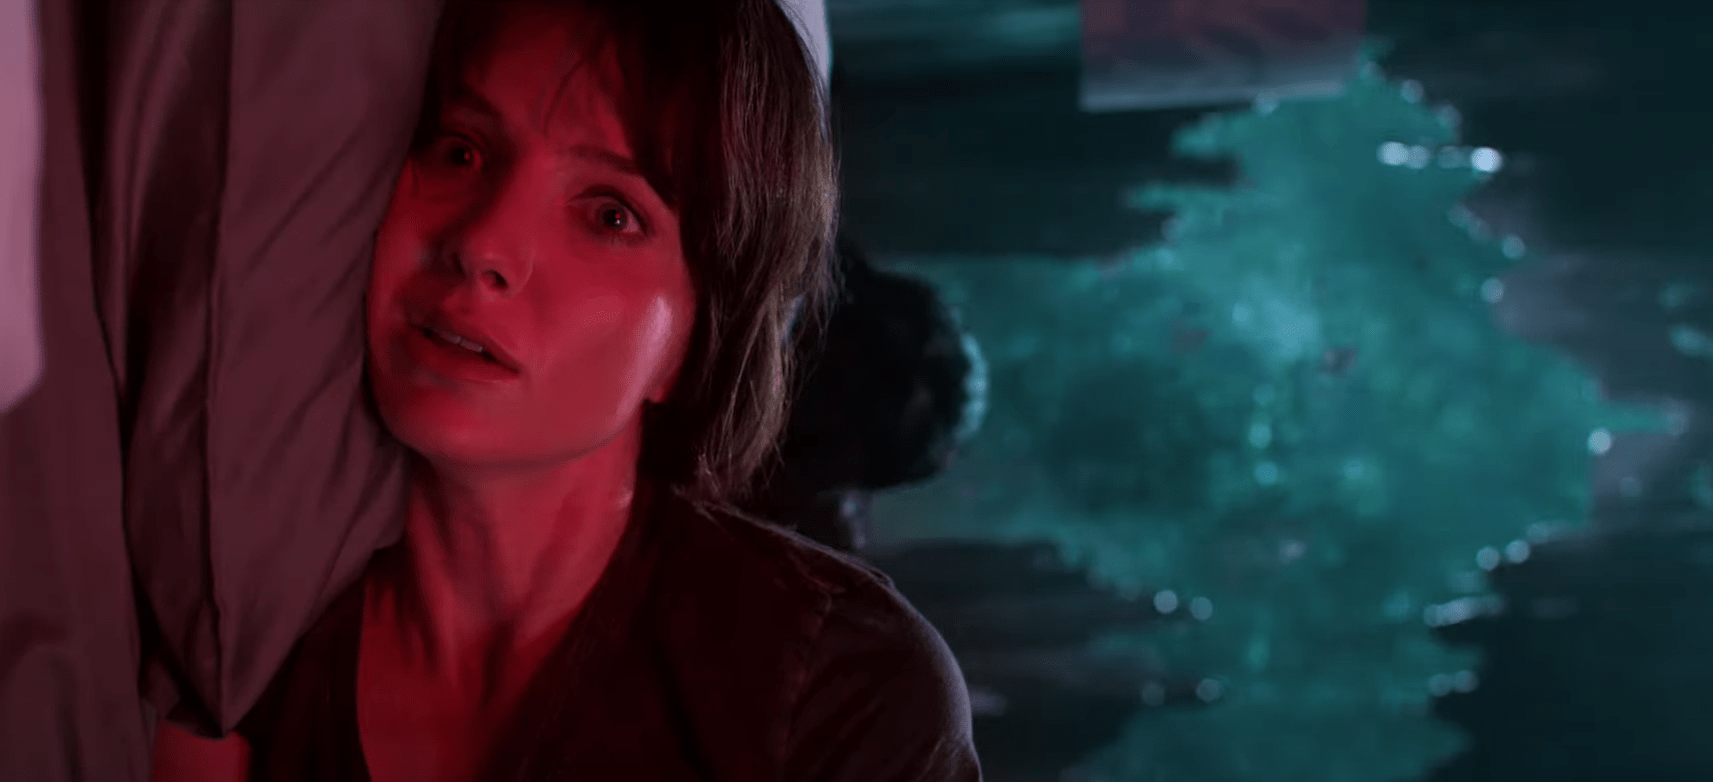 James Wan's Horror Movie 'Malignant' Will Release This September; Check Out  a New Teaser Image! - Bloody Disgusting